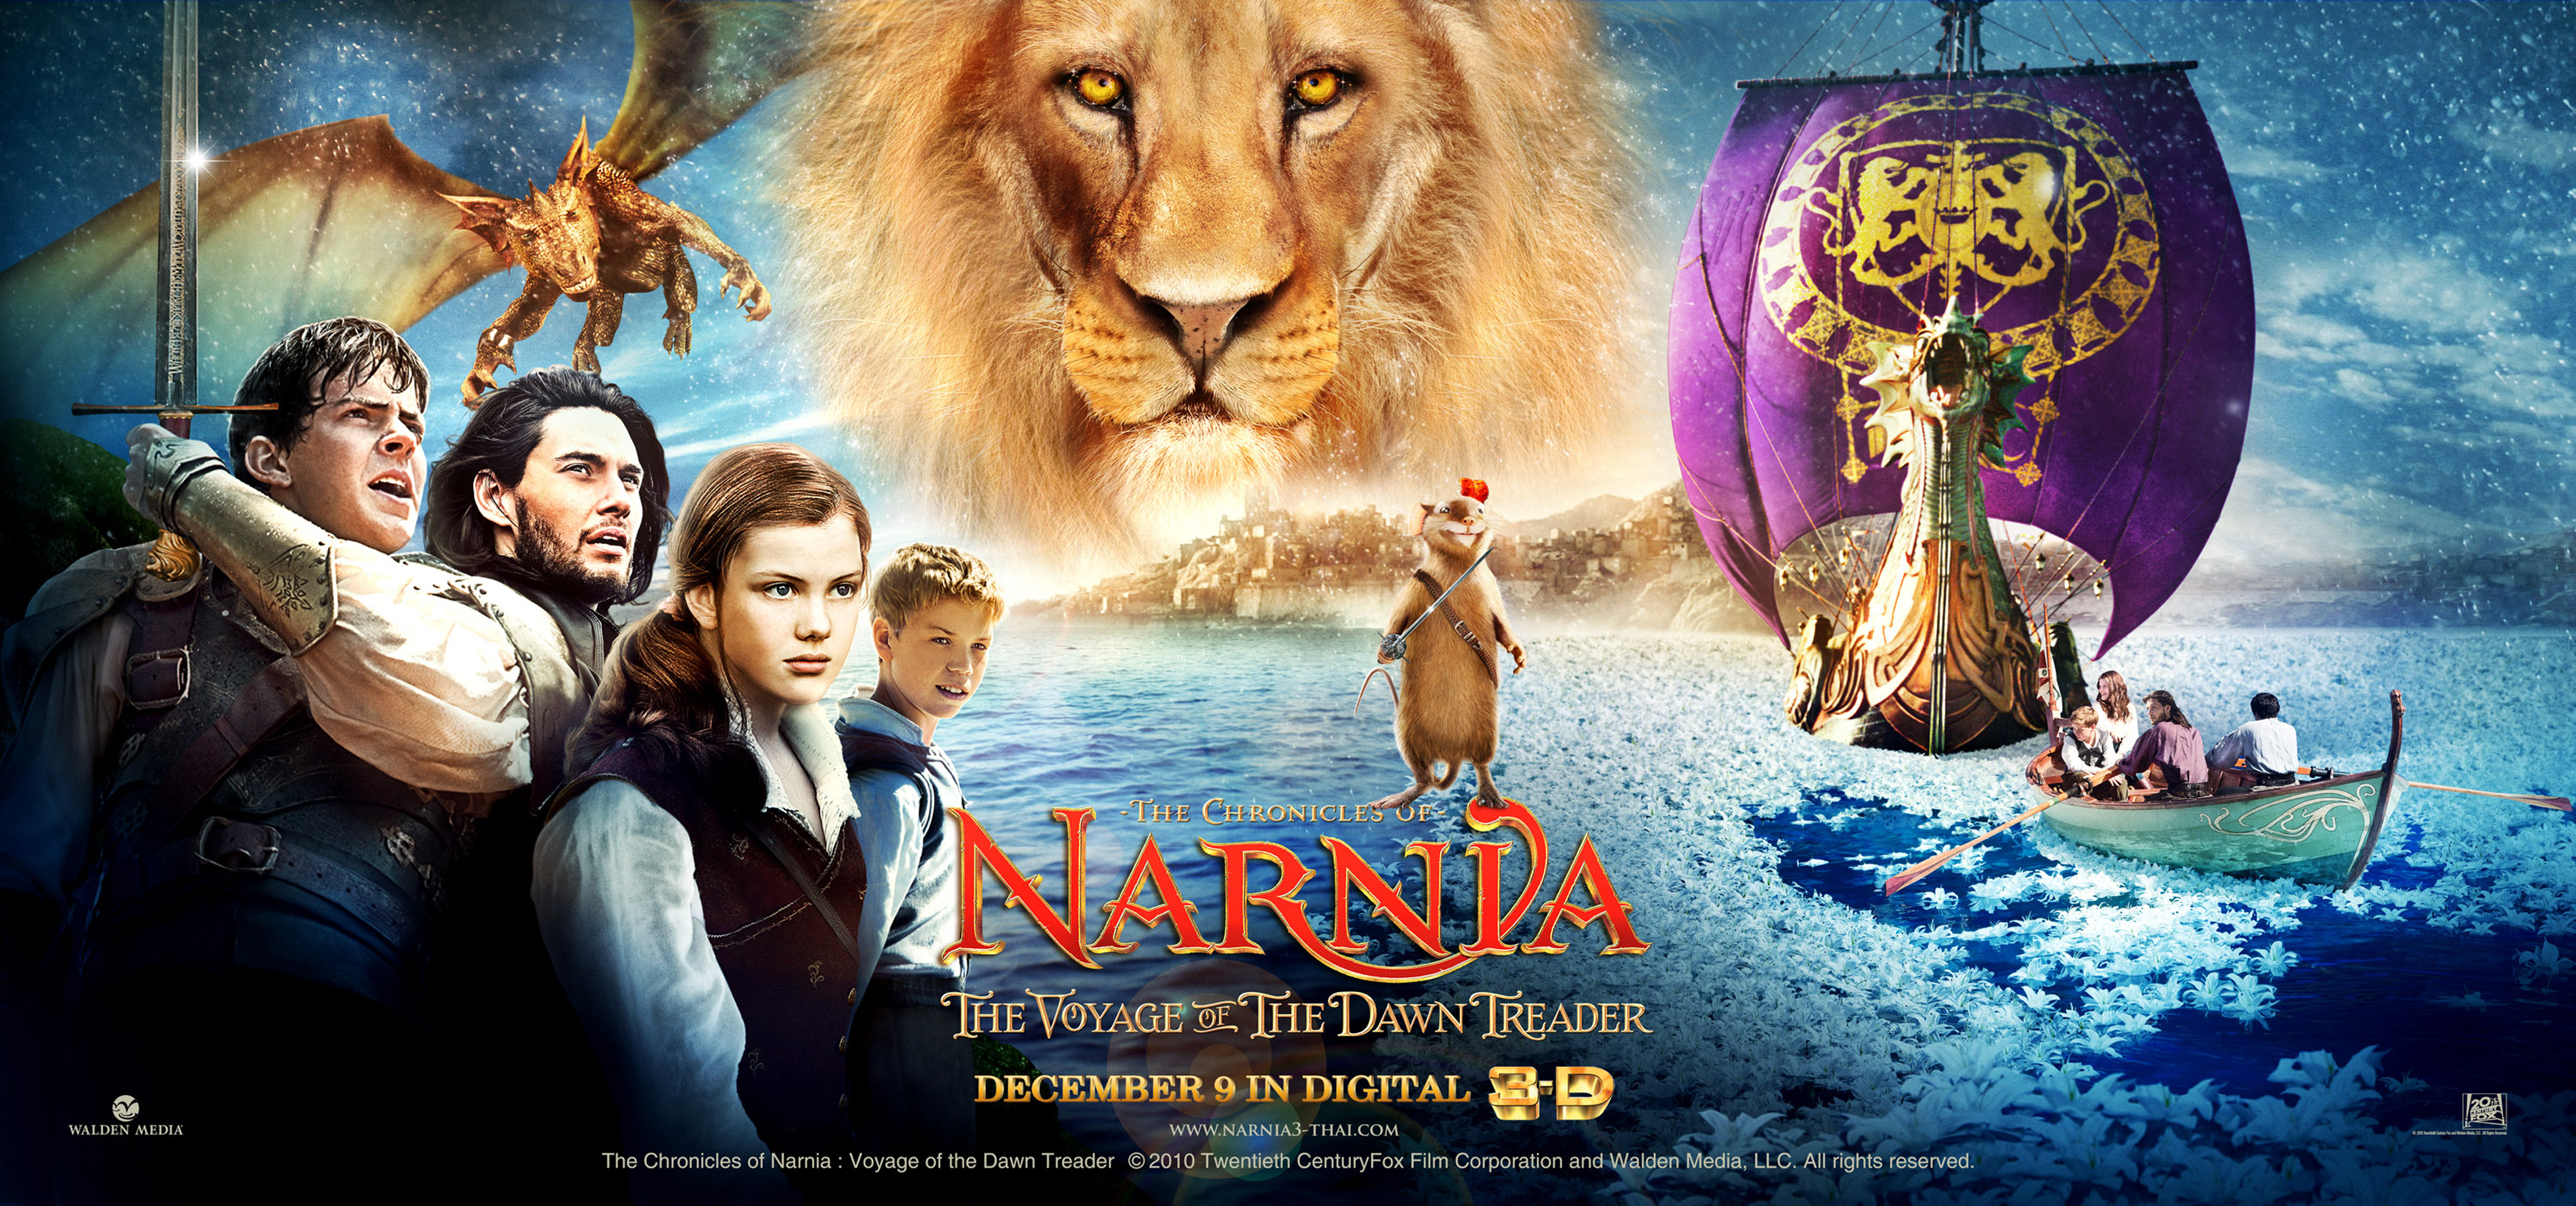 the chronicles of narnia silver chair cover seat corners voyage dawn